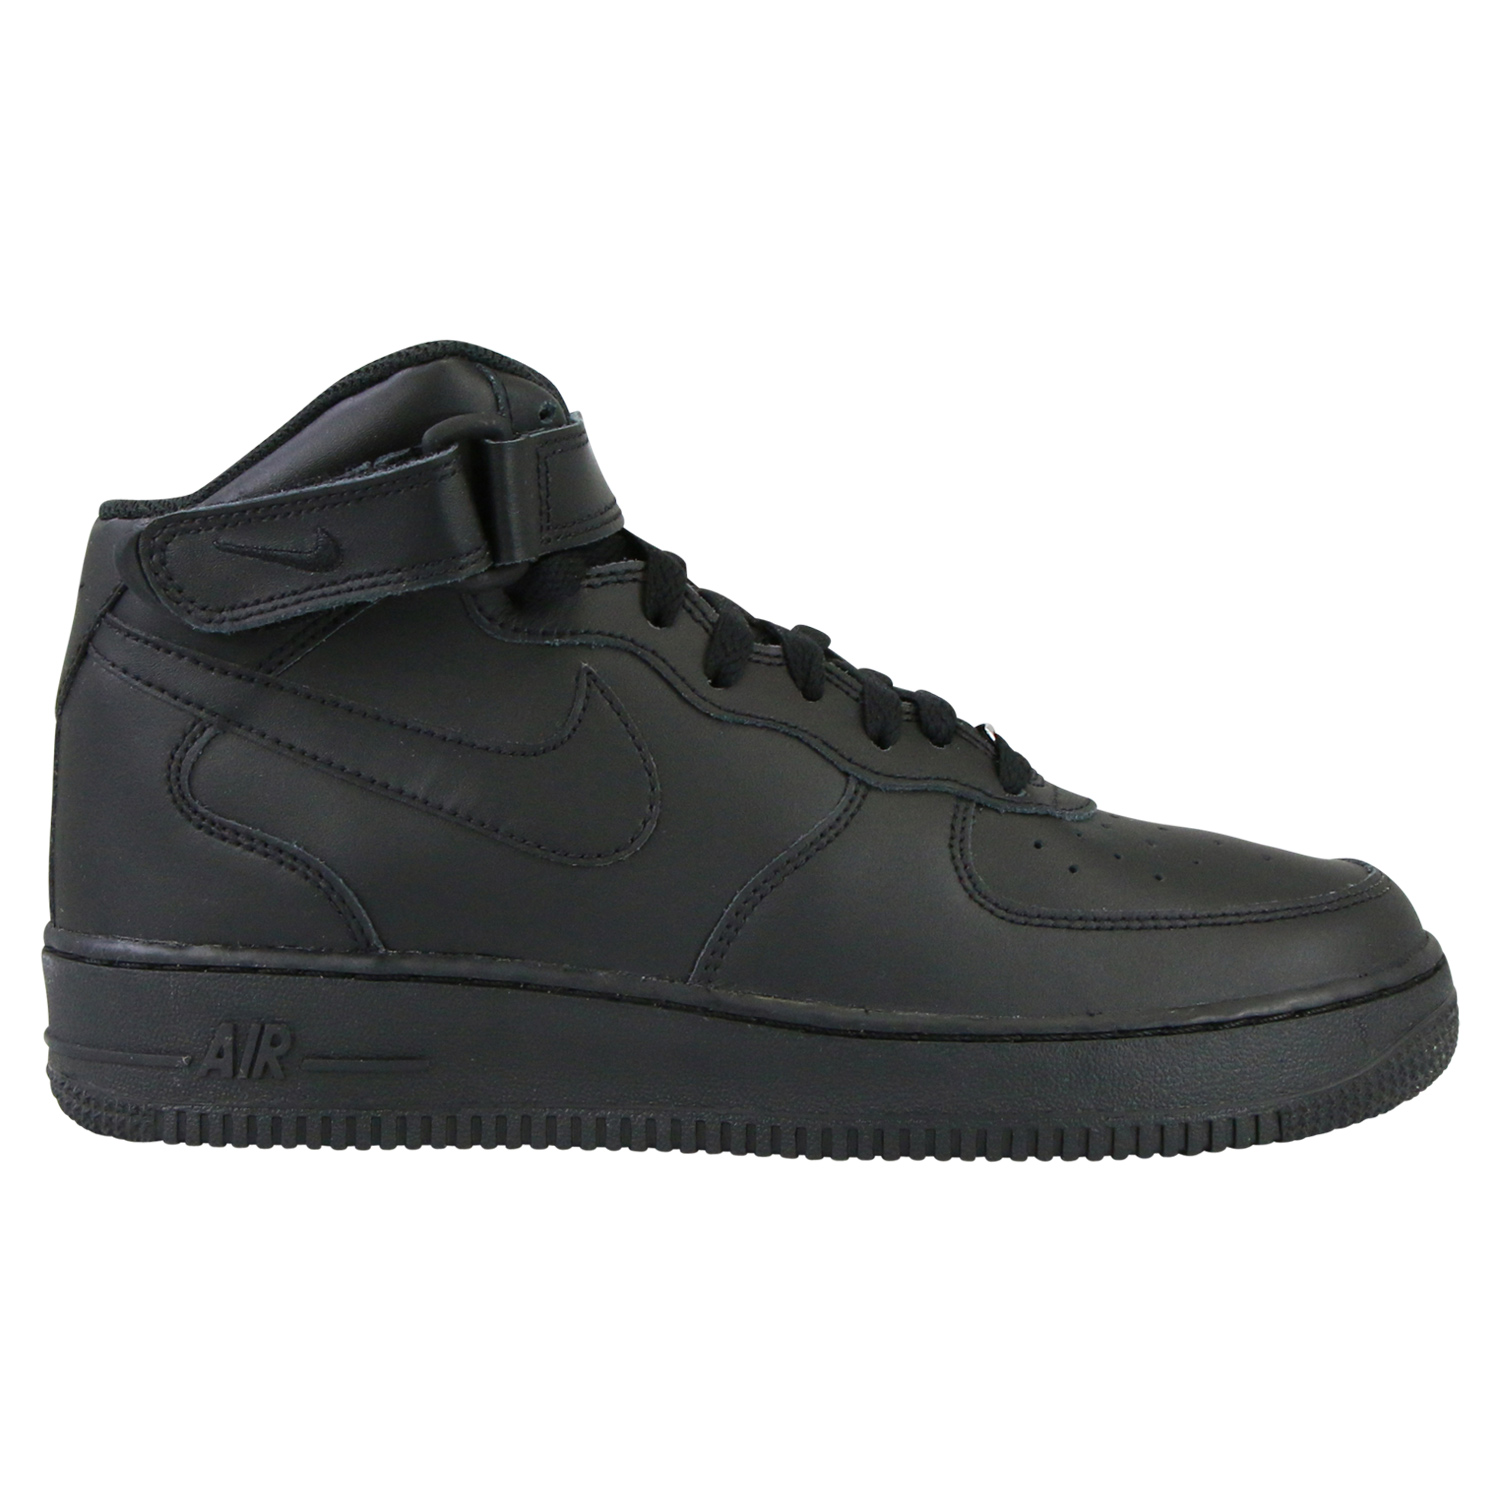 nike air force 1 mid 06 gs schuhe high top sneaker jungen. Black Bedroom Furniture Sets. Home Design Ideas